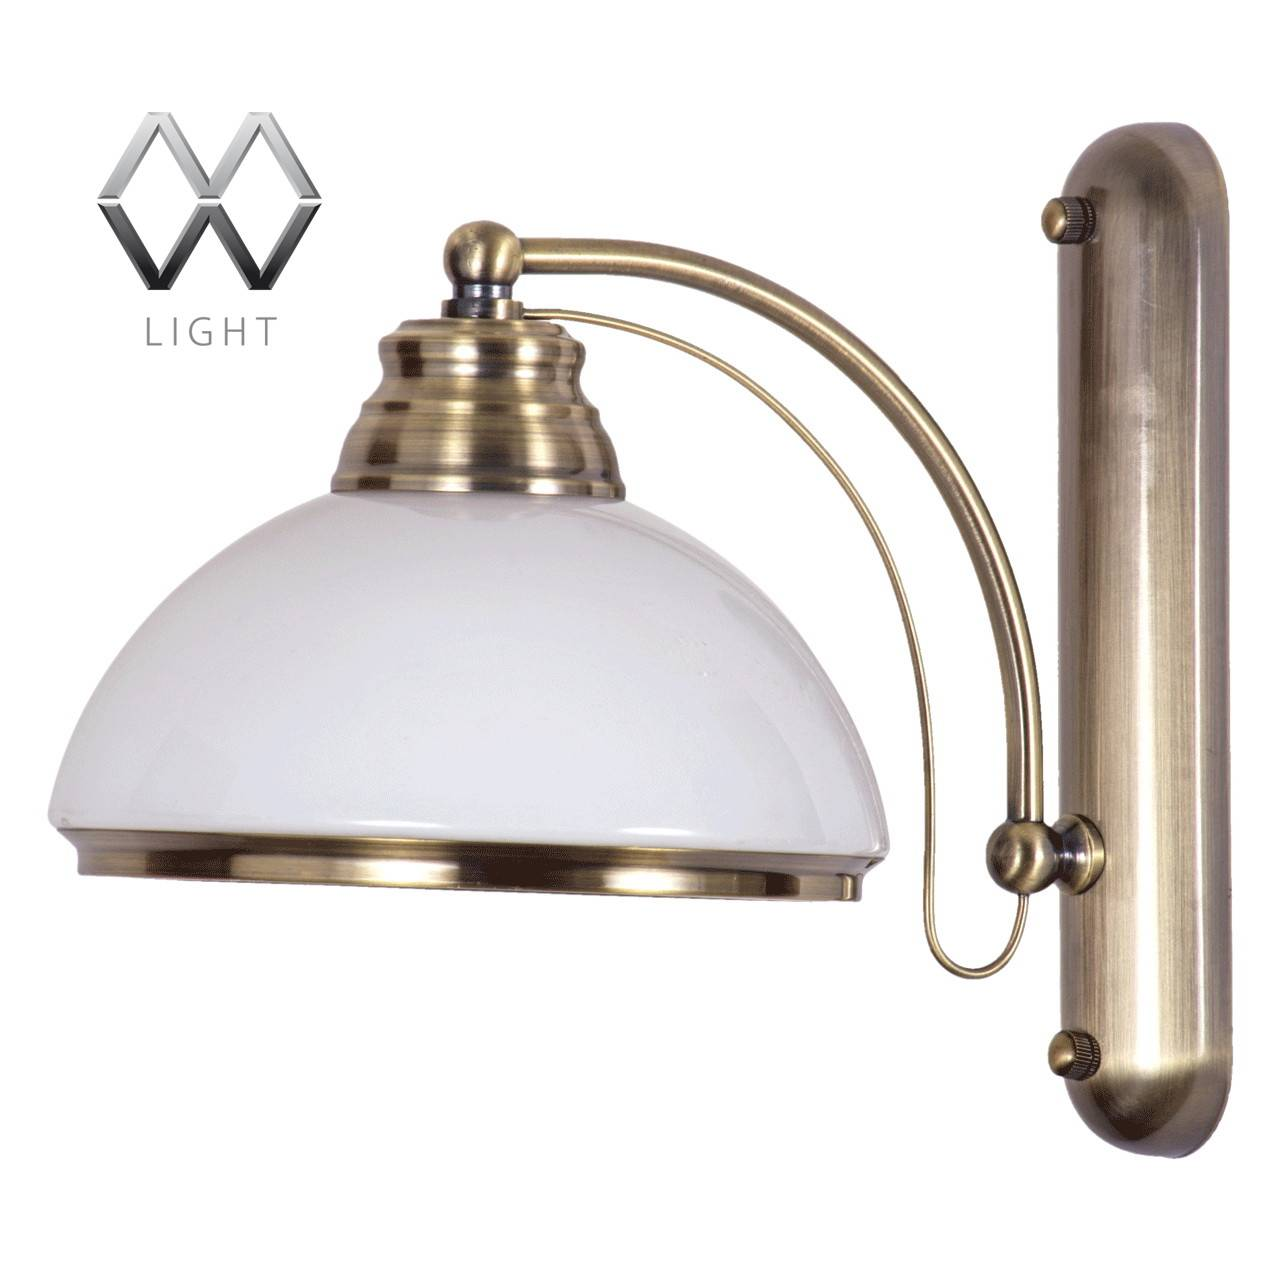 Бра MW-Light Фелиция 347020801 бра mw light 357020301